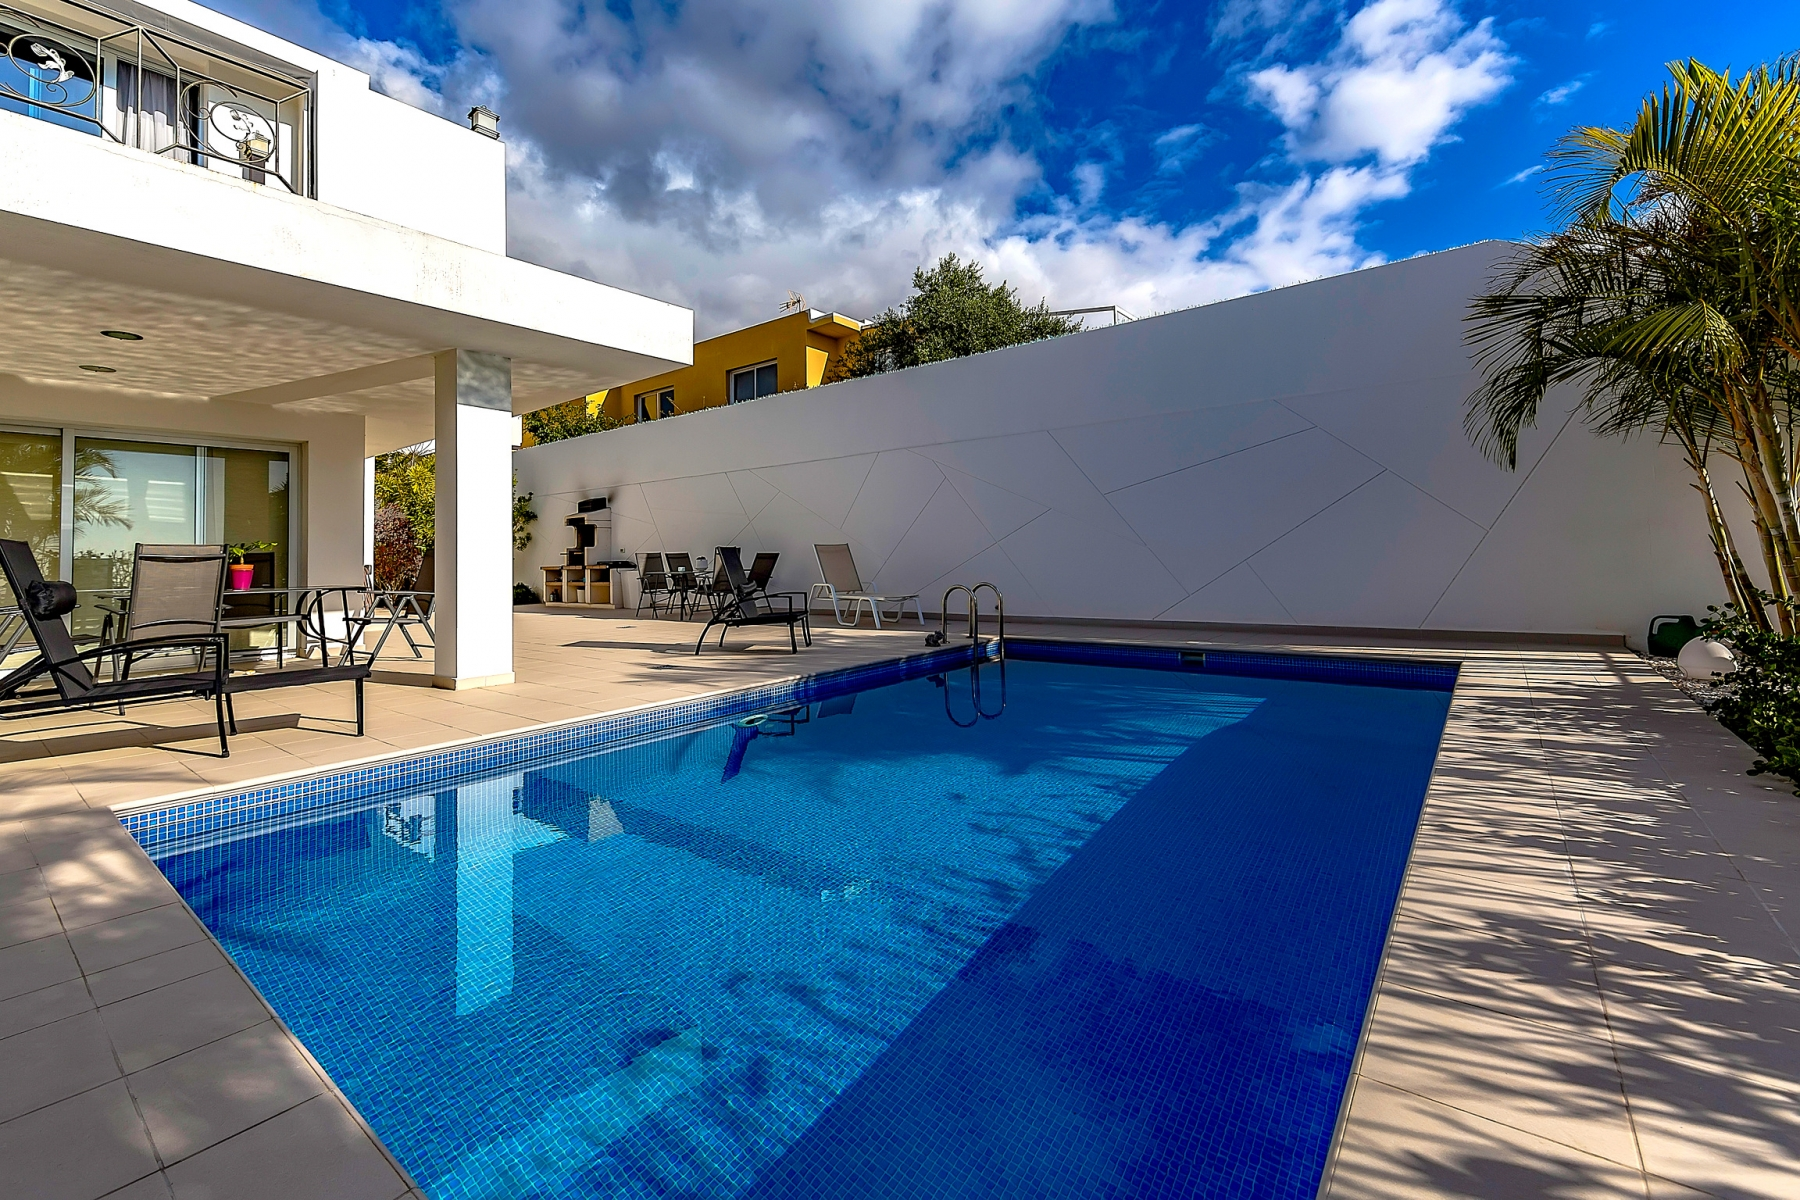 Properties for Sale in Tenerife, Canary Islands, Spain   SylkWayStar Real Estate. Luxury villa in the fashionable area of the south of the island of Tenerife – Madroñal.. Image-22830